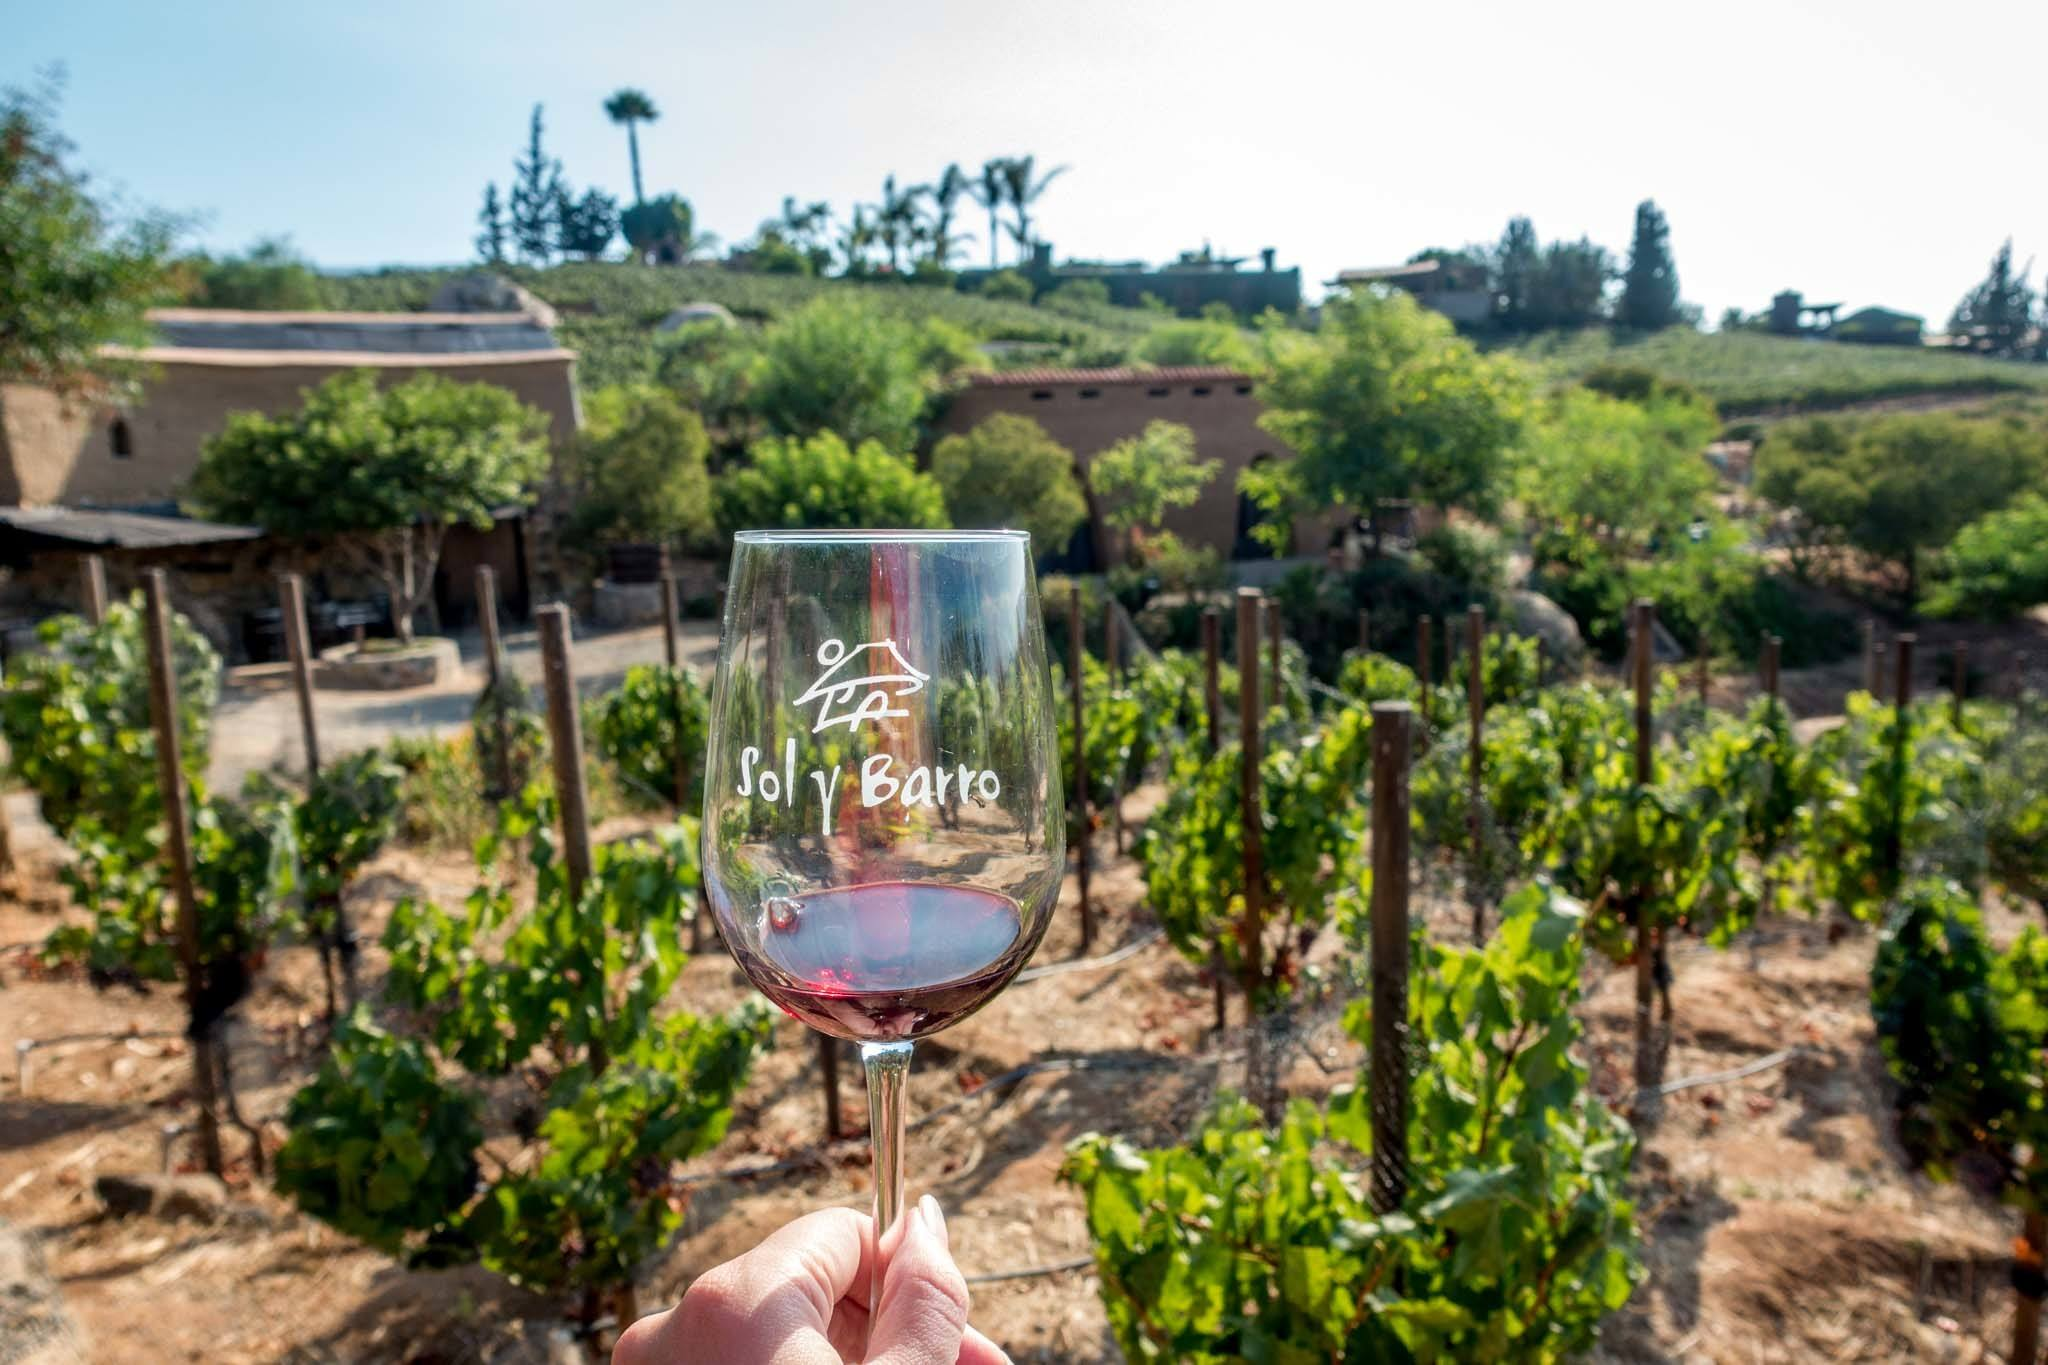 Glass of wine at the Sol y Barro winery